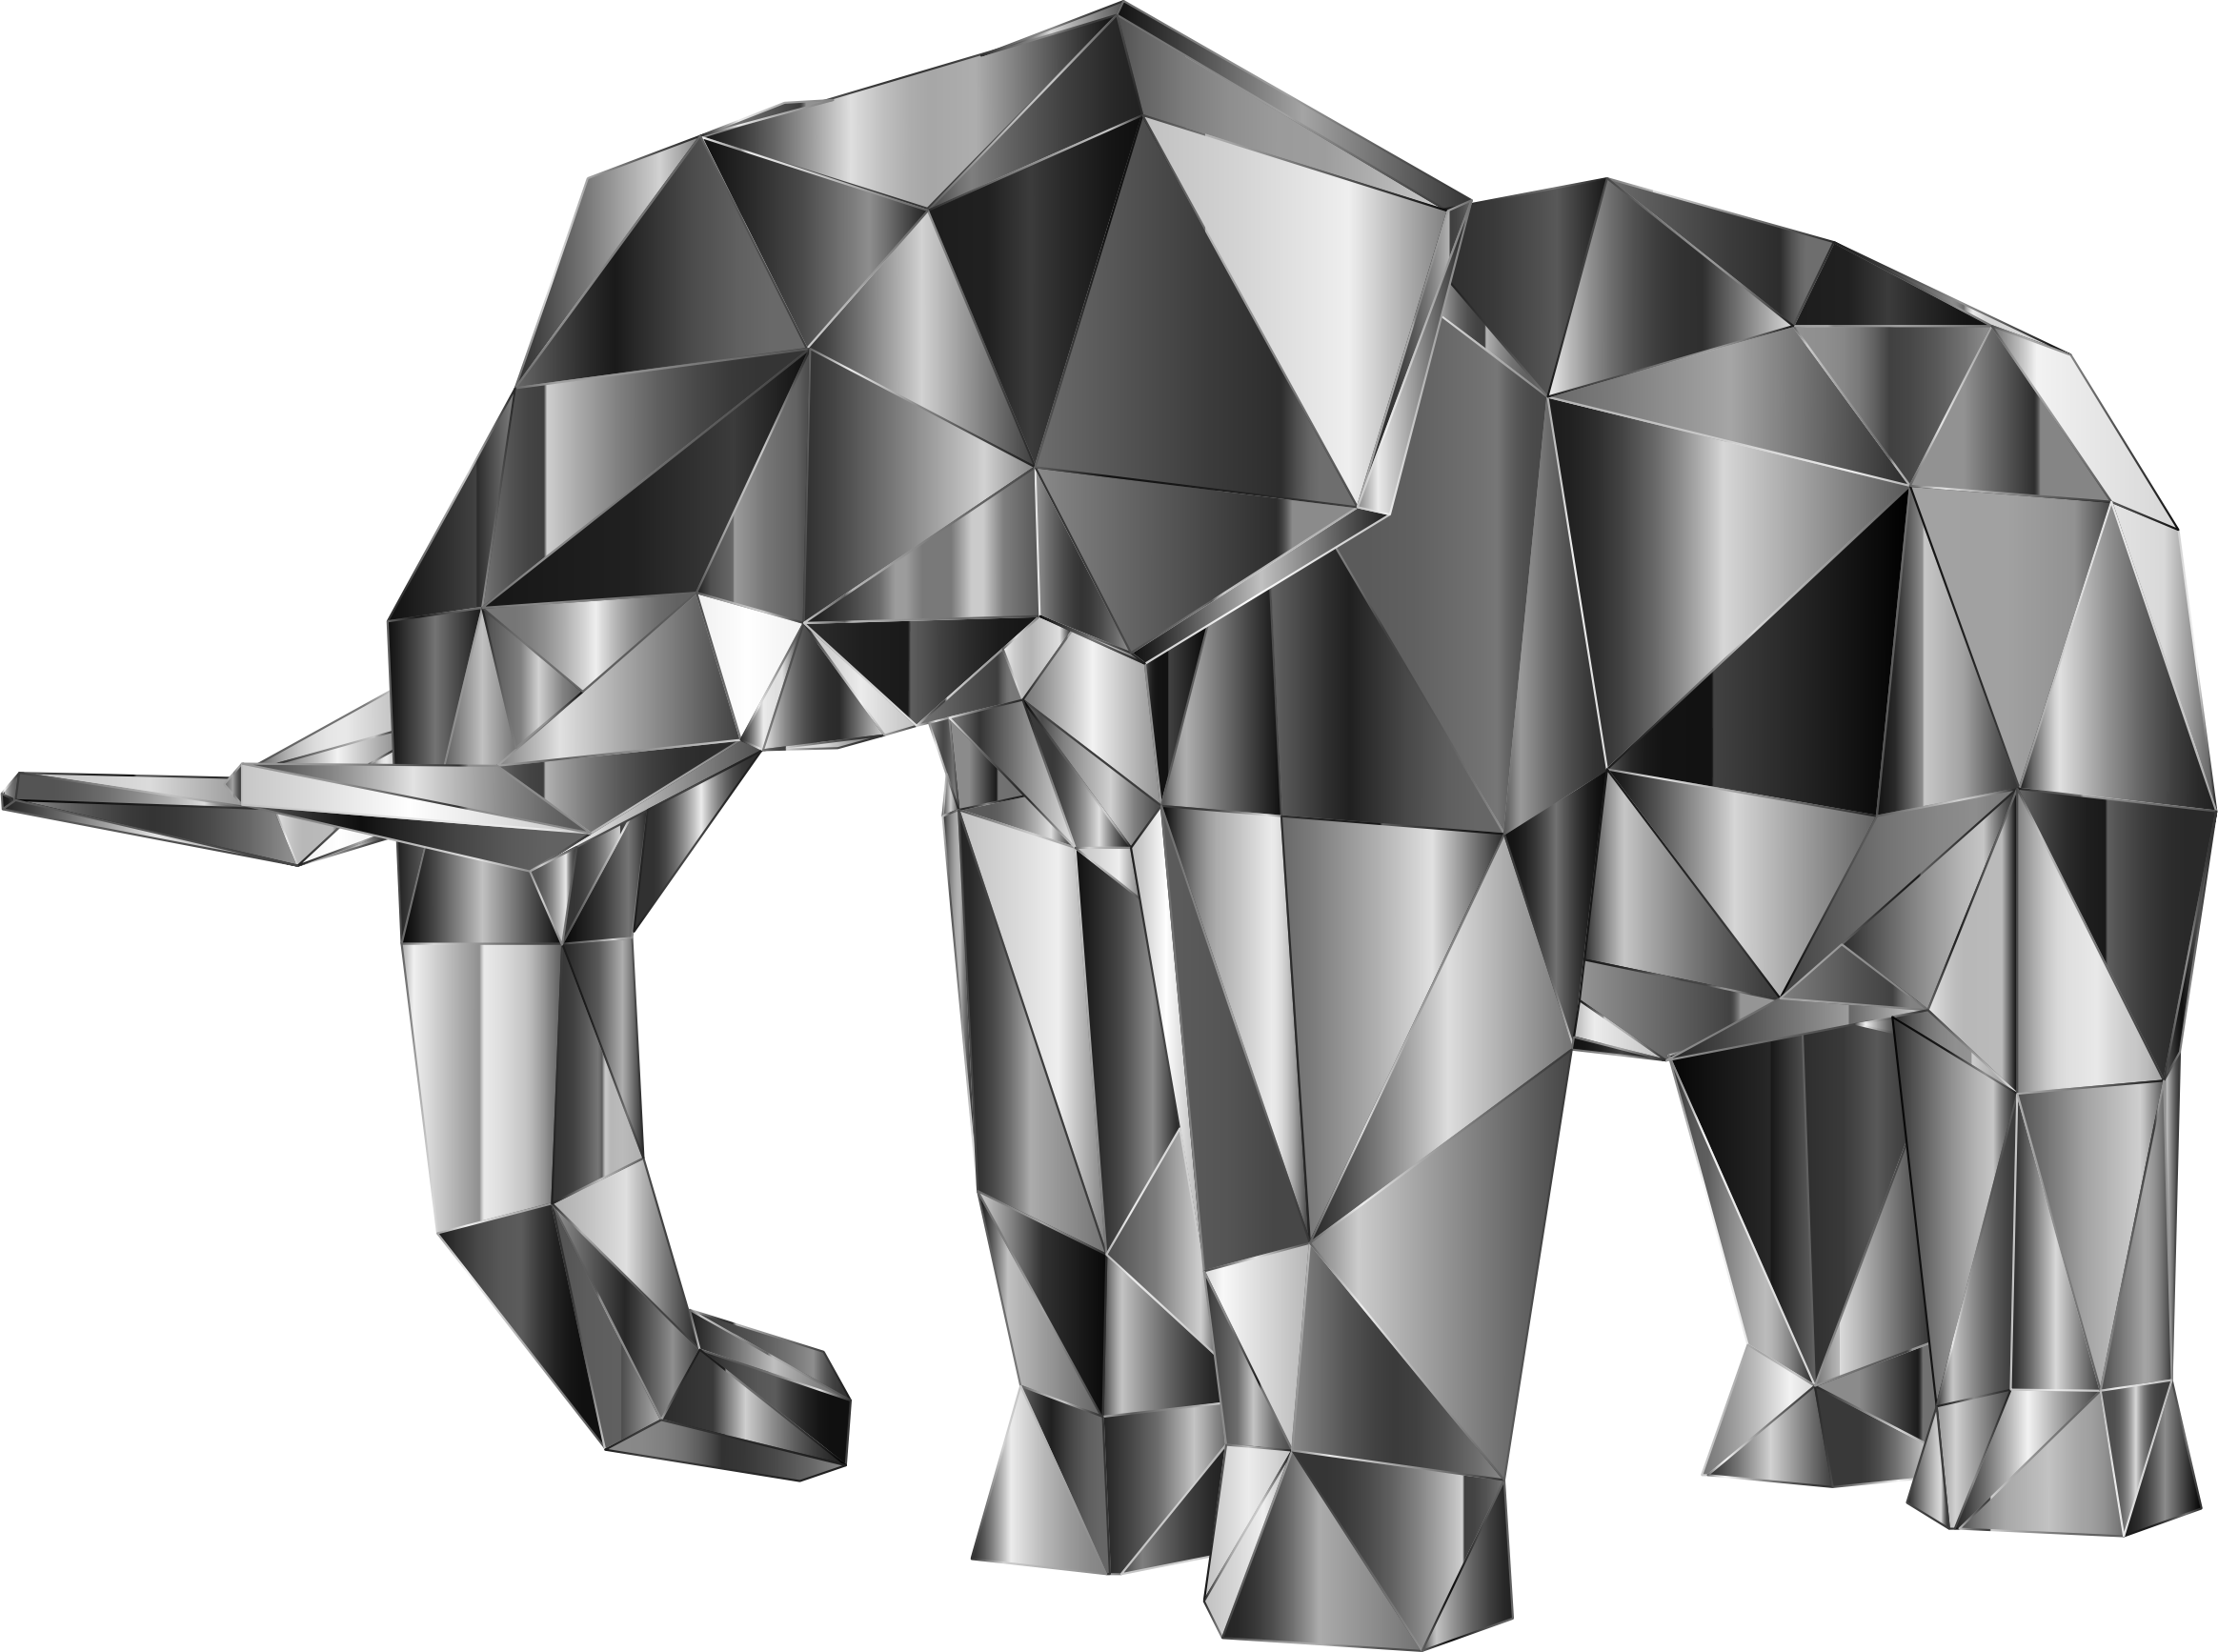 Prismatic Low Poly Elephant 3 by GDJ